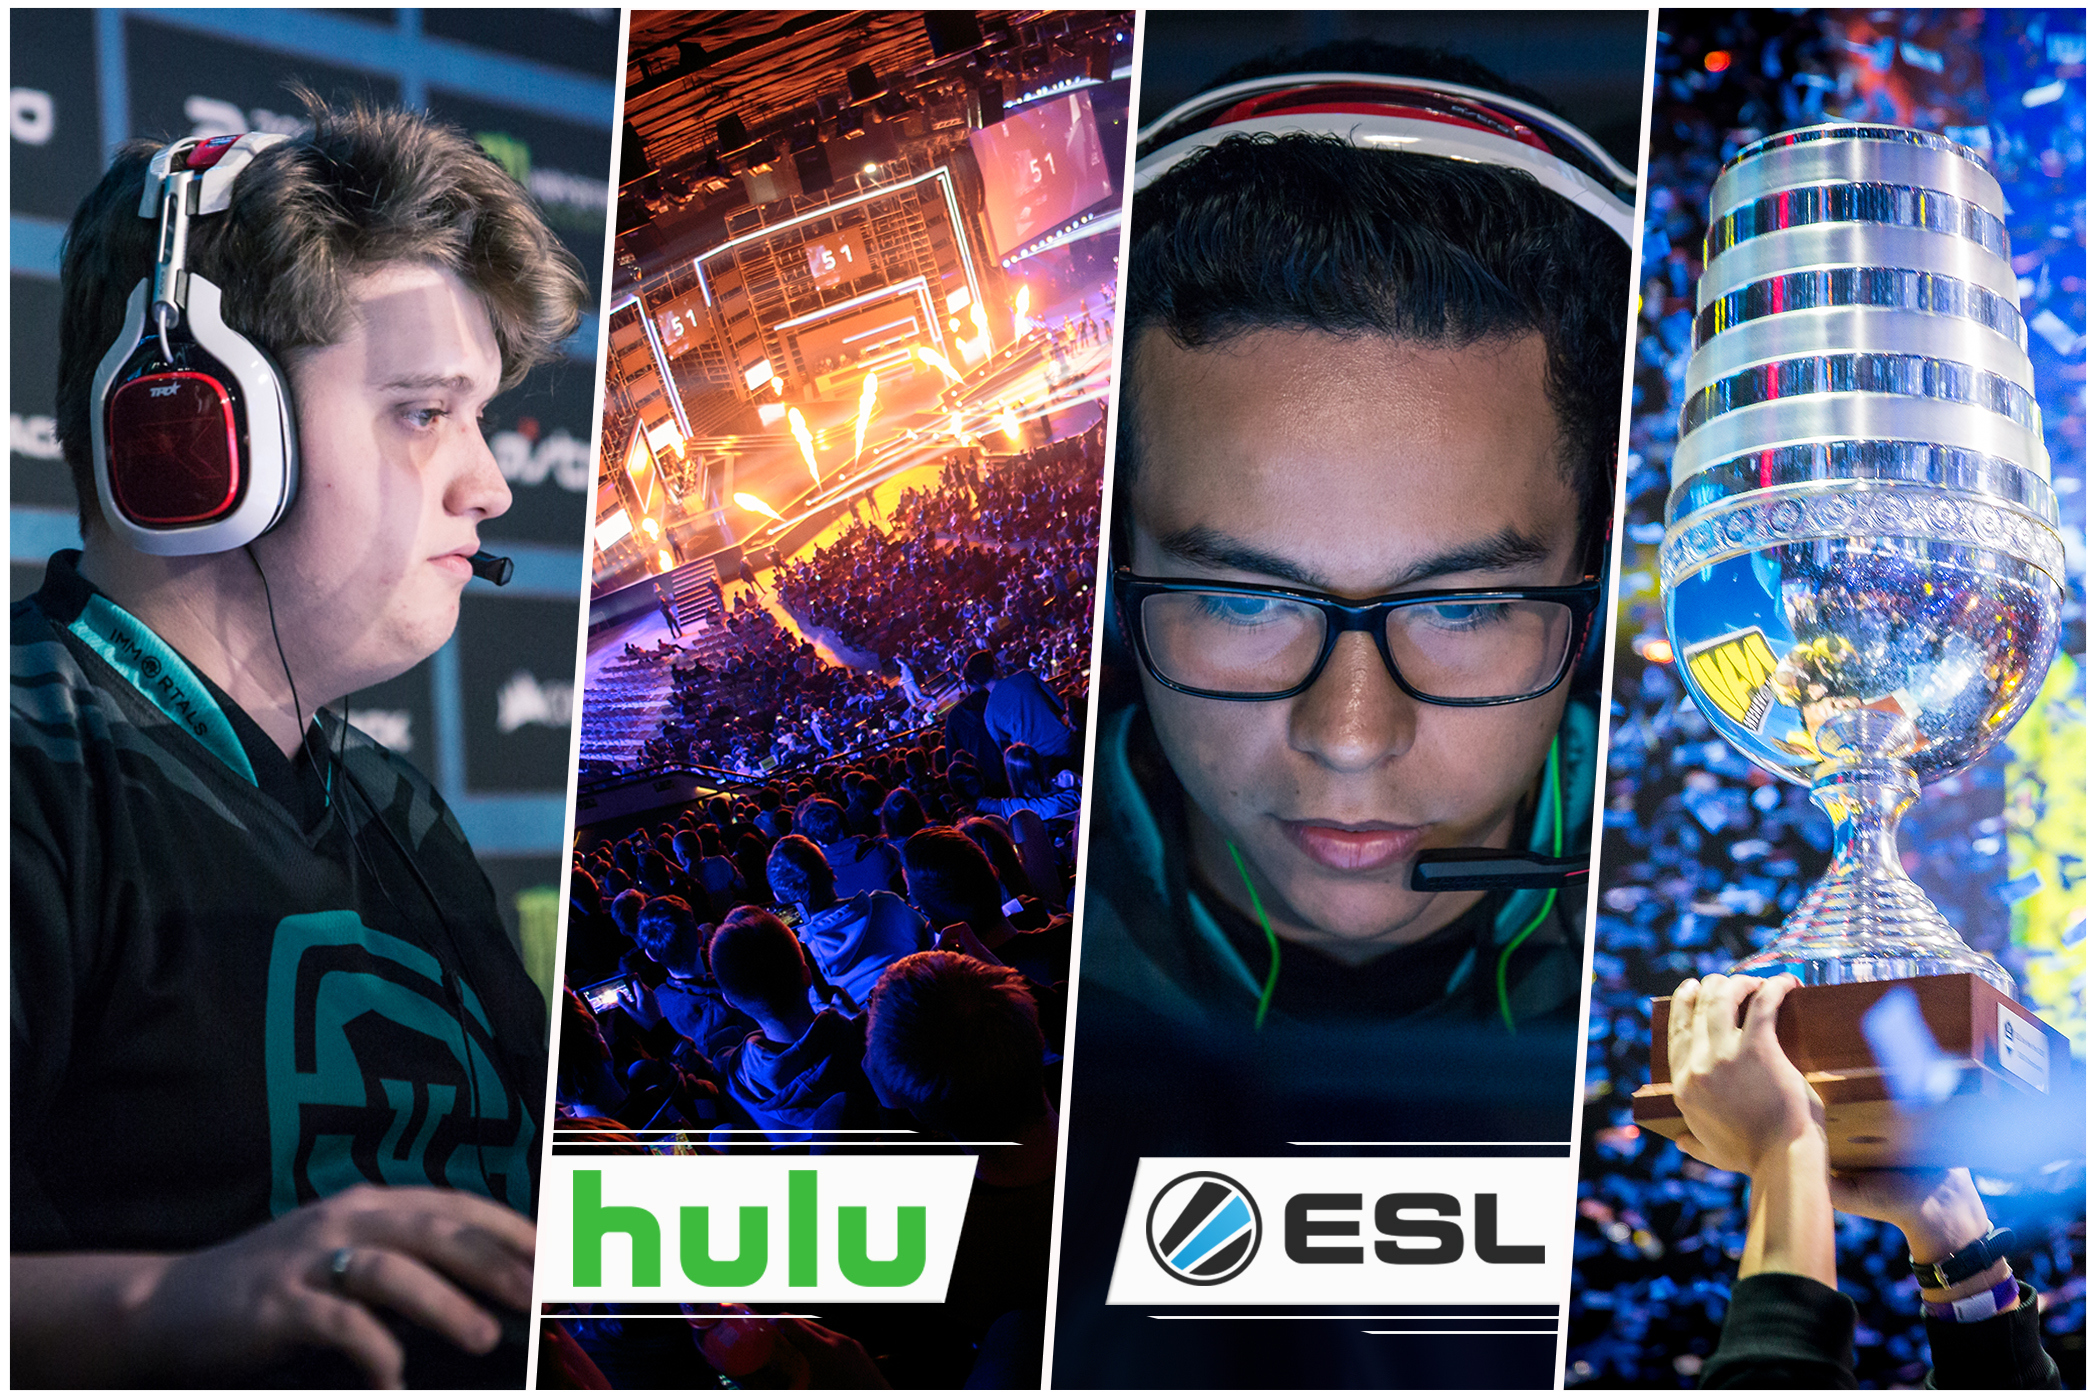 Hulu and ESL's Exclusive eSports Deal (Photo: ESL)